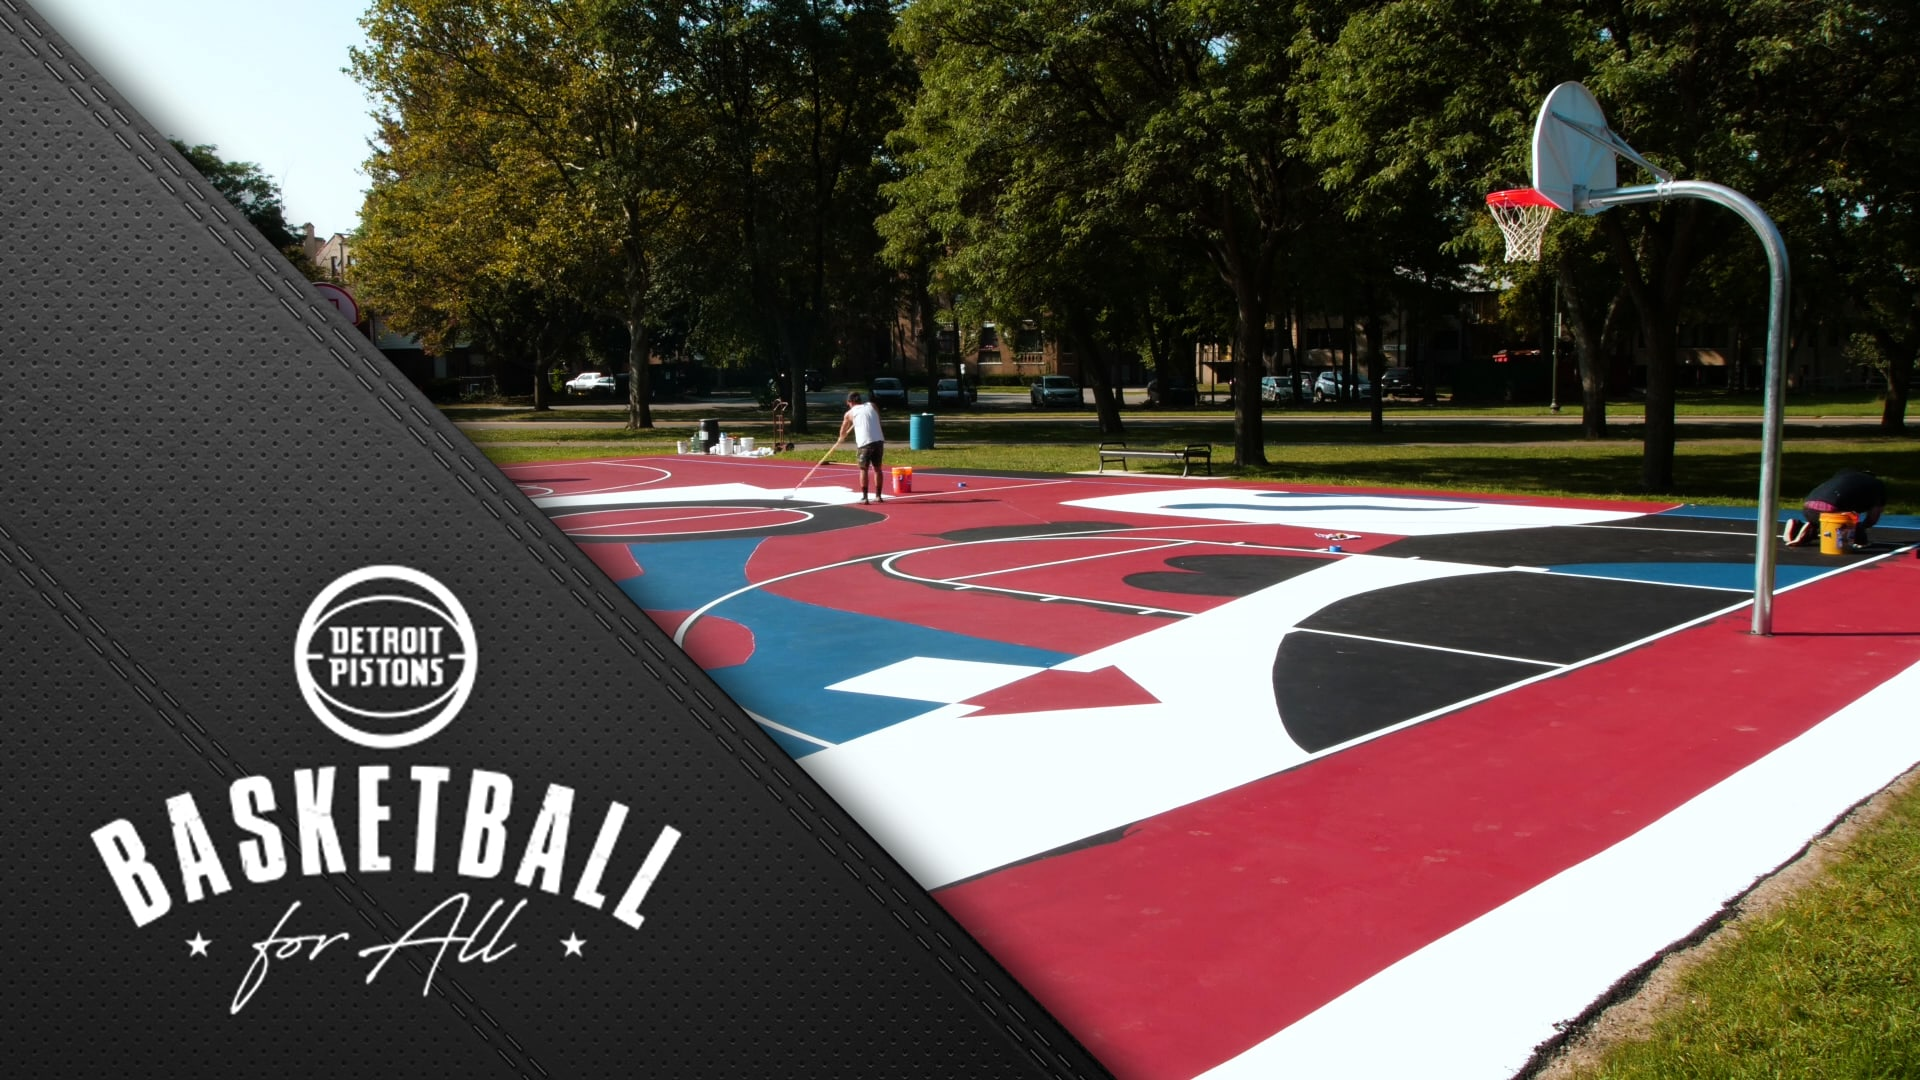 Basketball for All: Phase II Courts - A Celebration of Inclusion